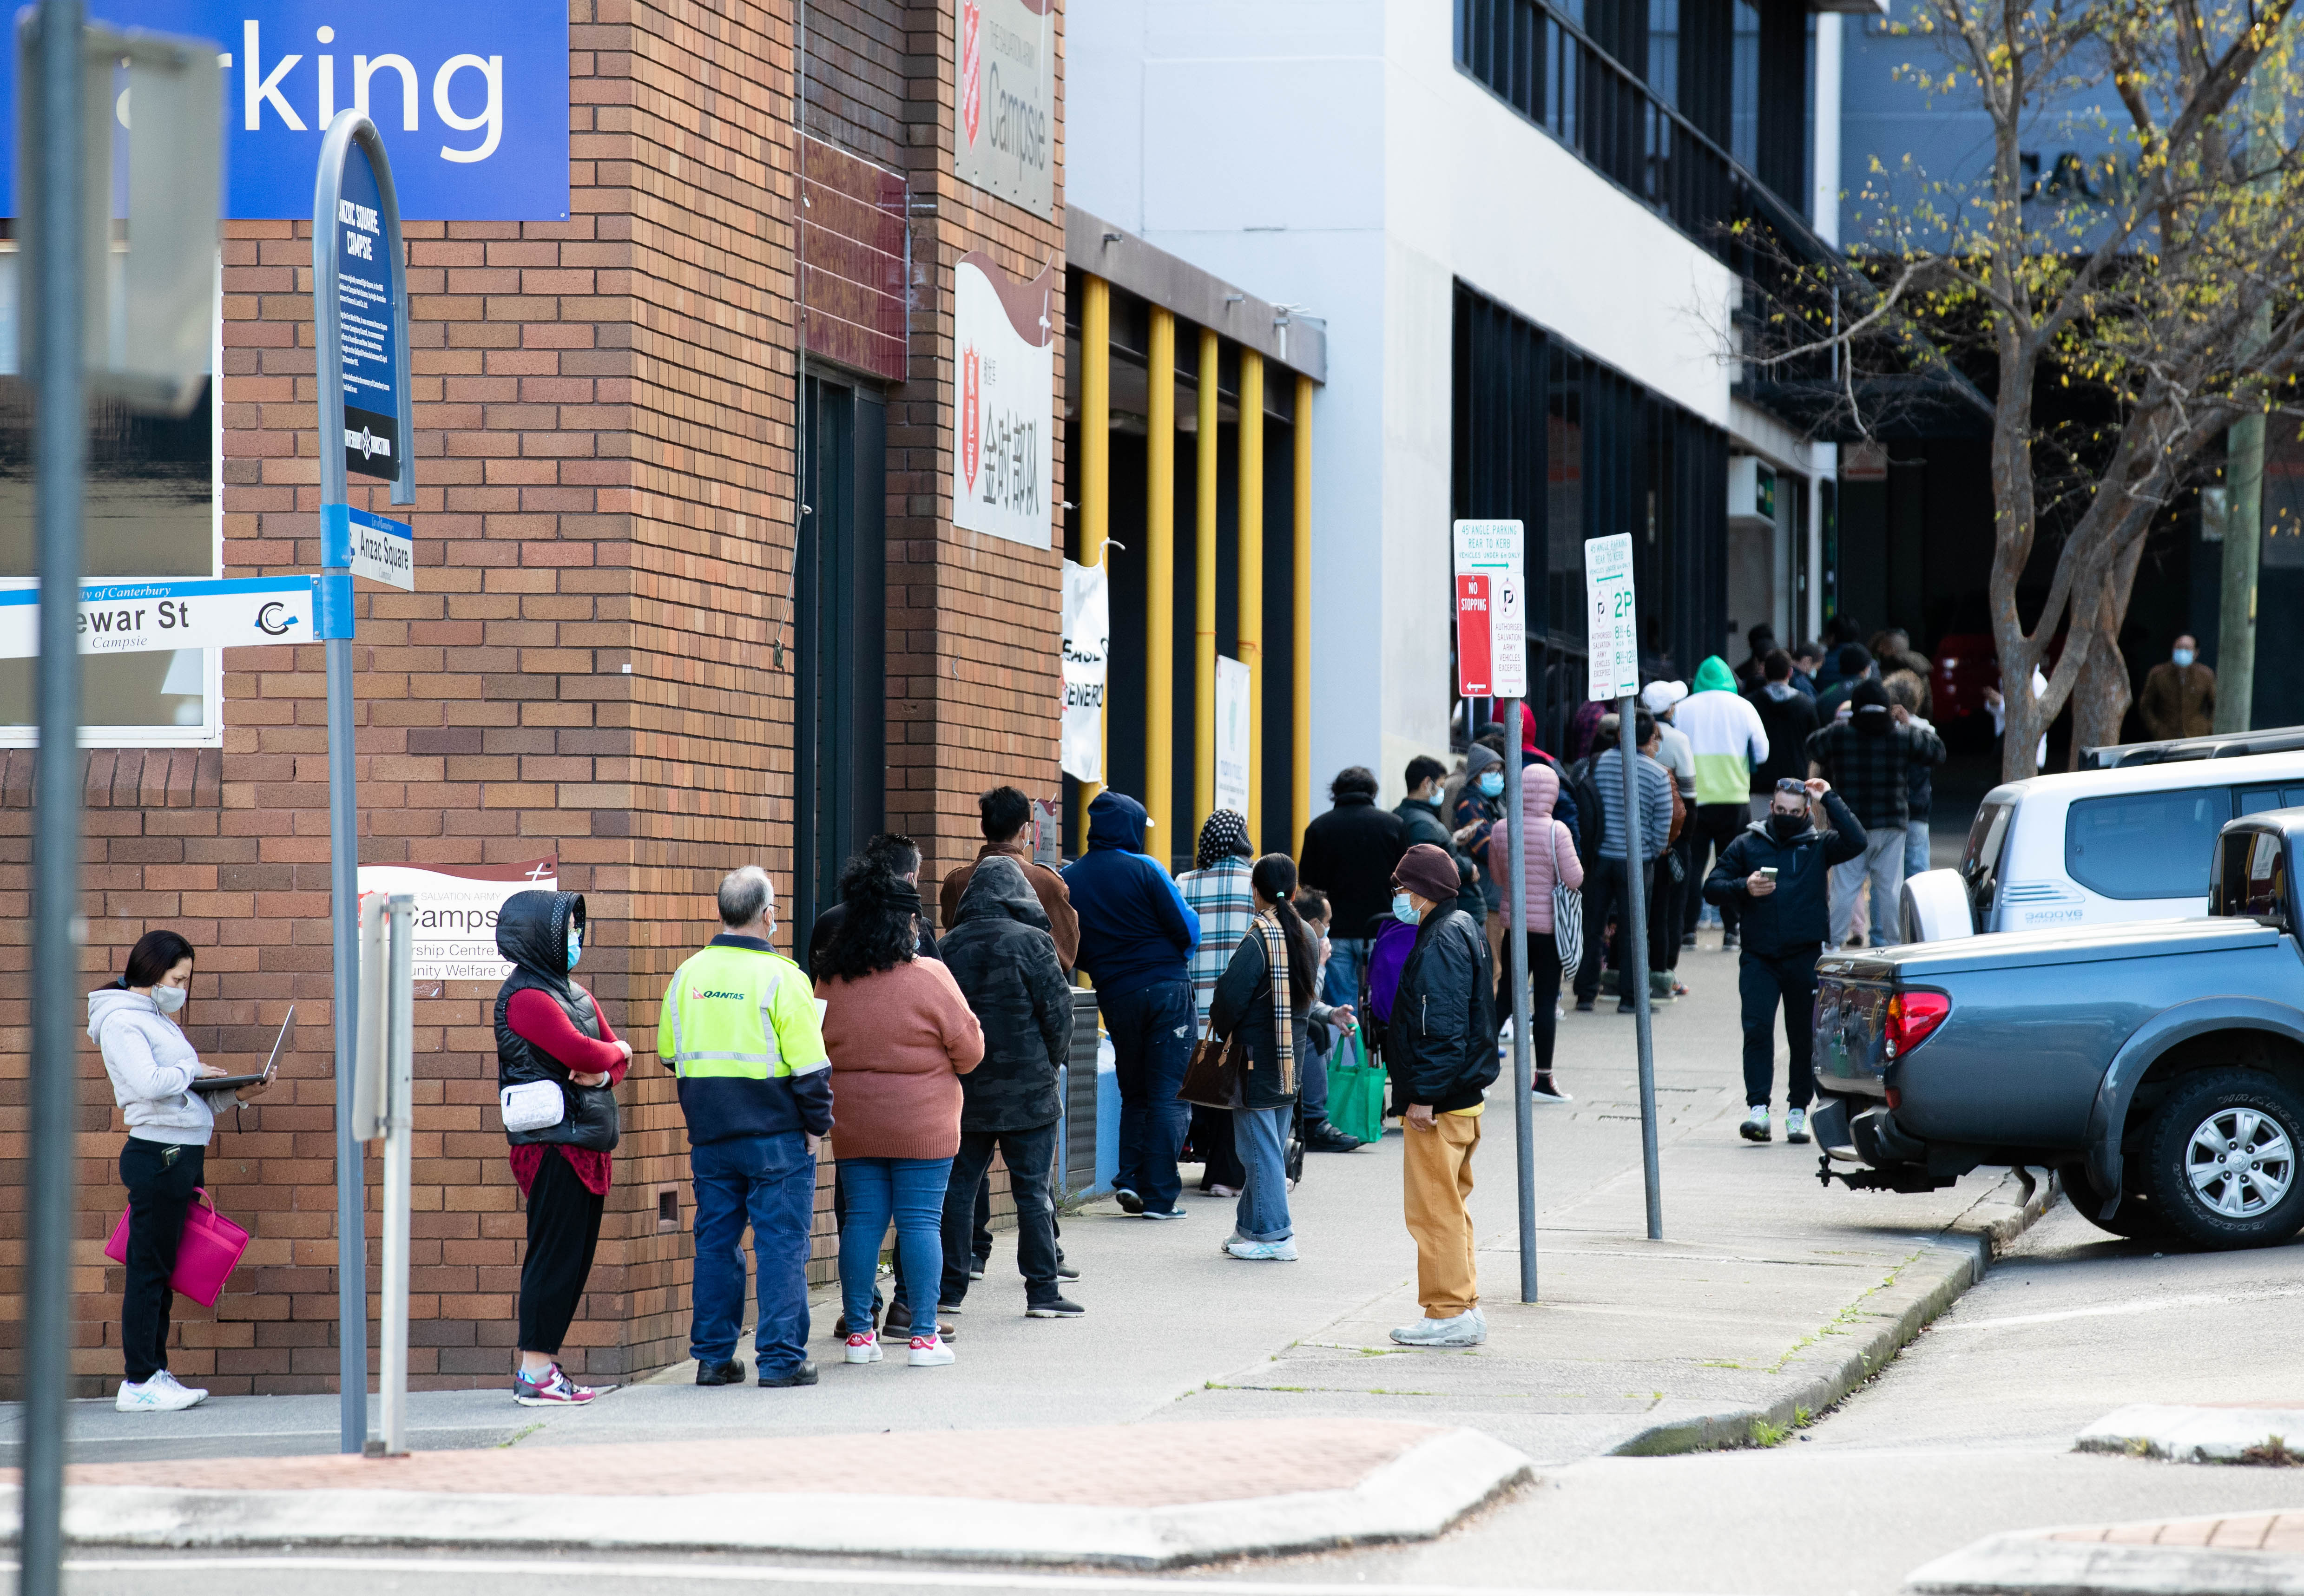 The queue for Centrelink in Campsie, in Sydney's inner-west, stretches down the street, during Sydney's lockdown.